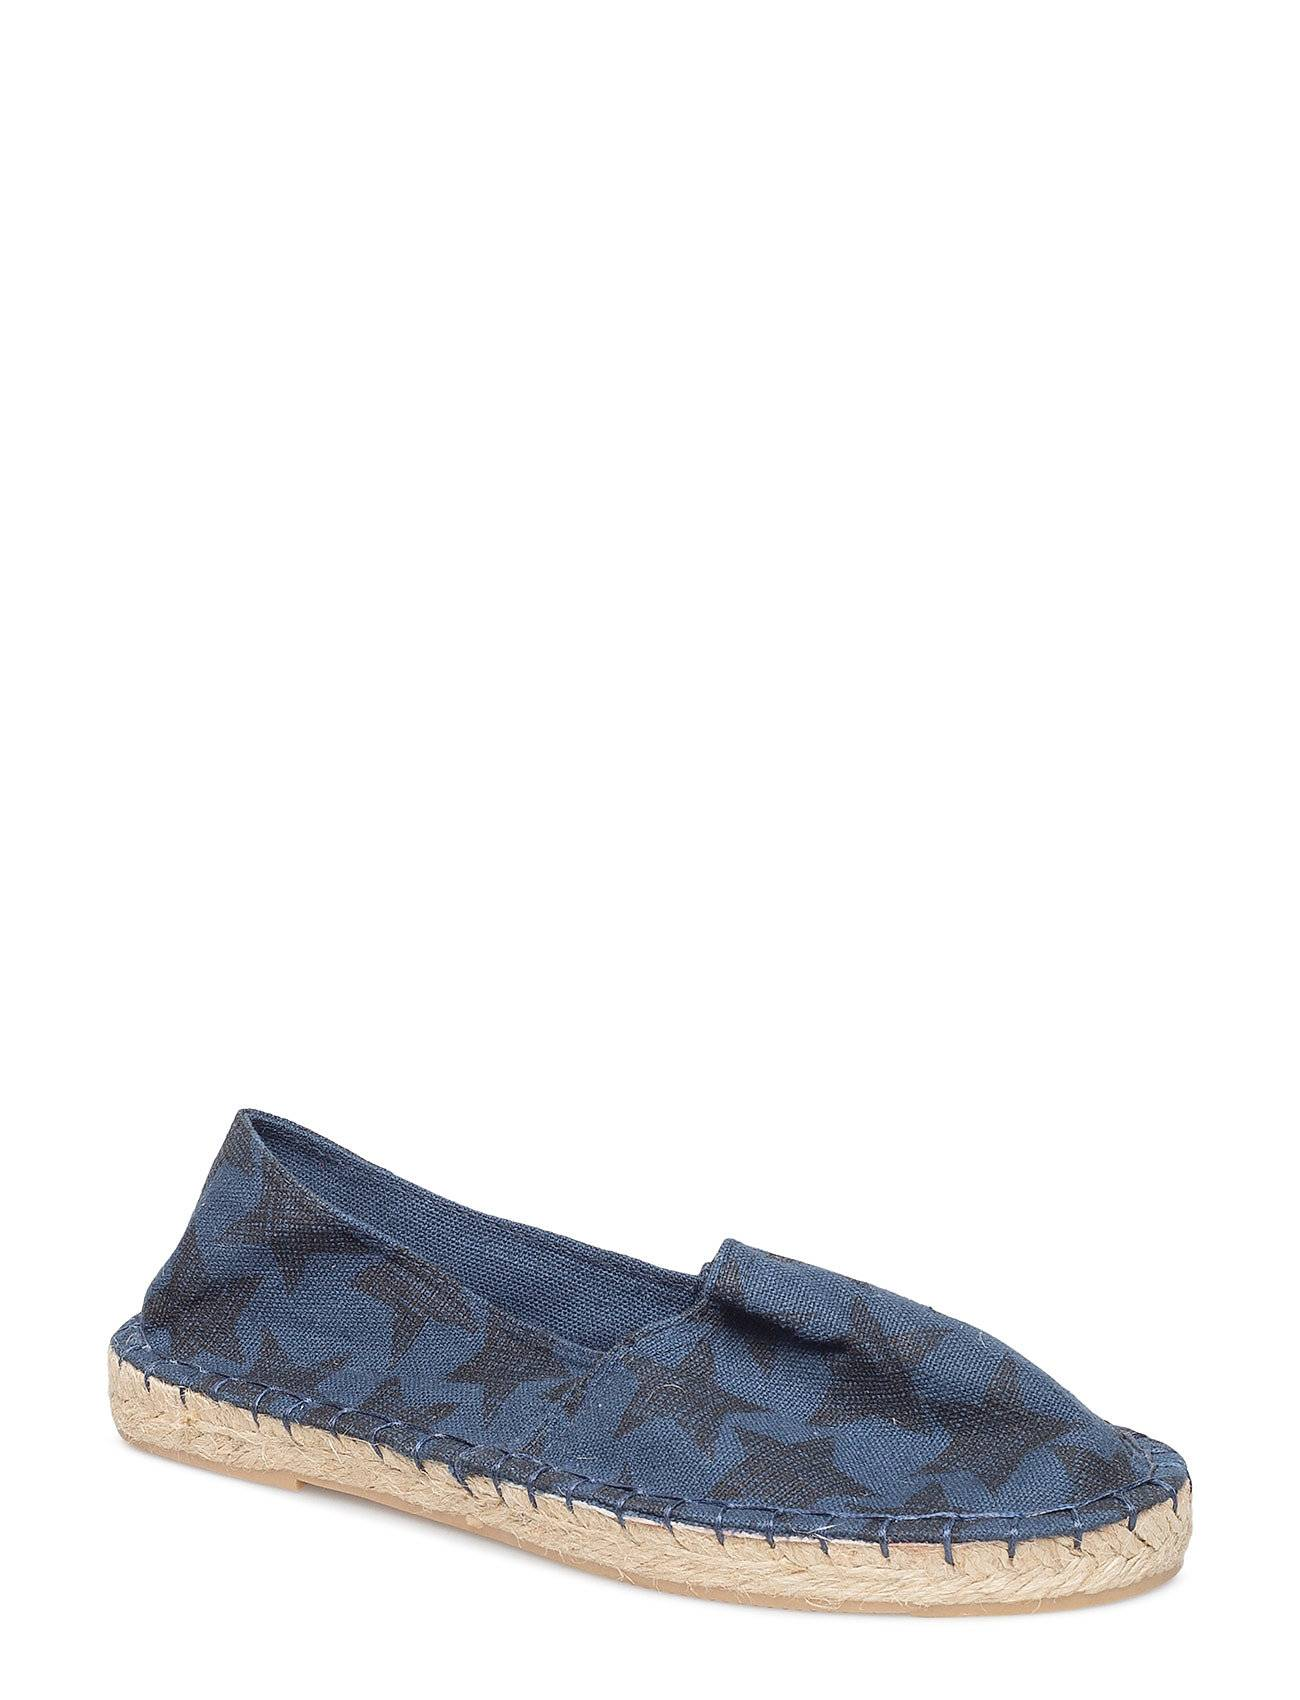 Move by Melton Unisex - Espadrilles With Print